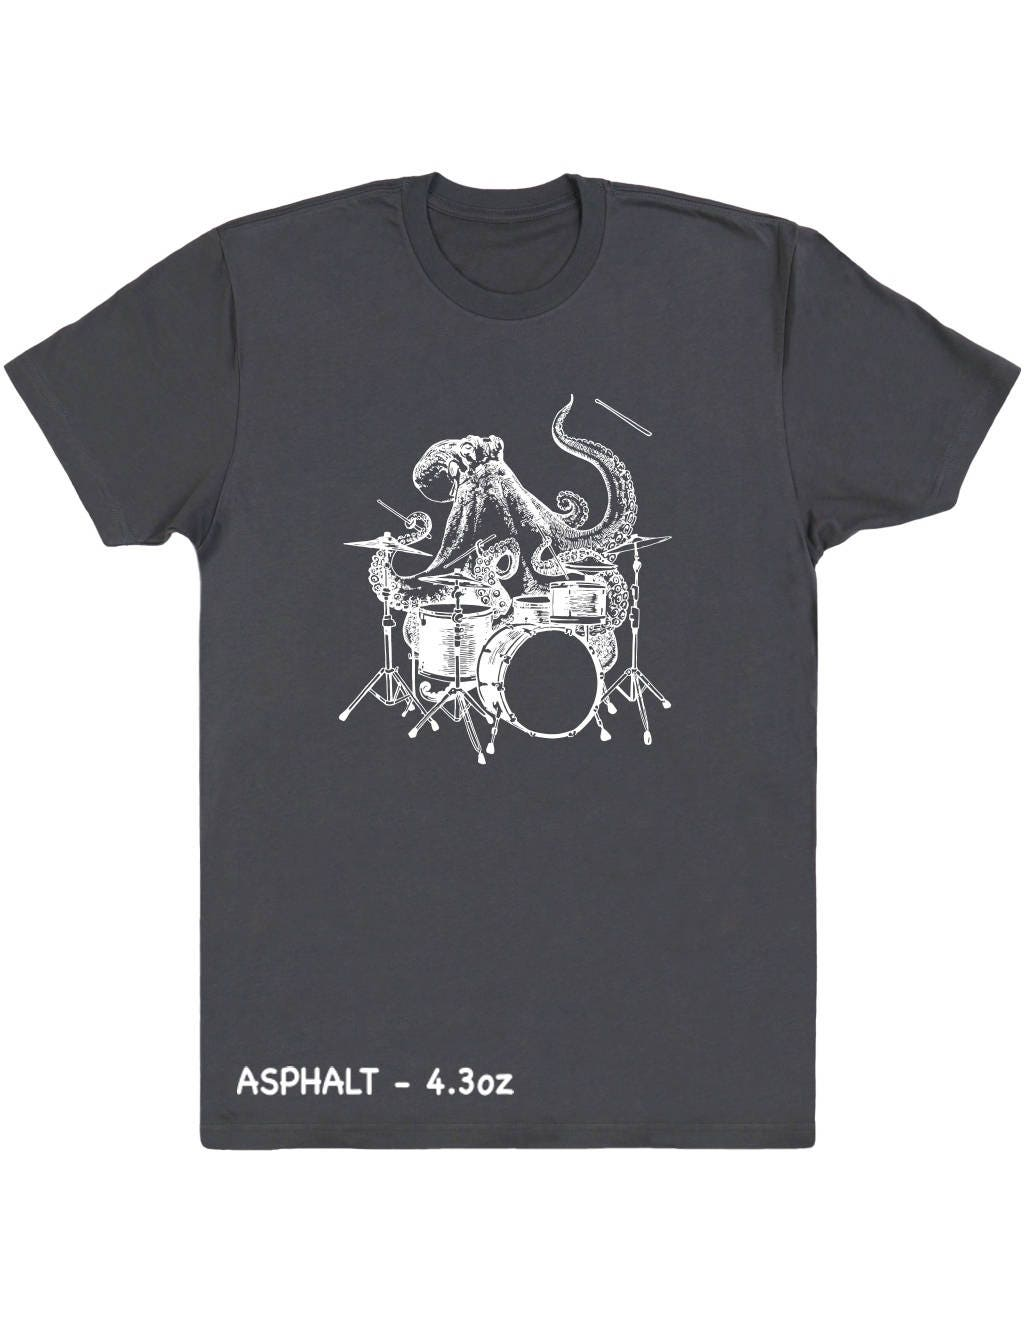 Octopus Playing Drums Men's T-Shirt Gift For Him, Octopus Shirt Boyfriend Gift Husband Gift, Musician Birthday Gift, Christmas Gifts SEEMBO